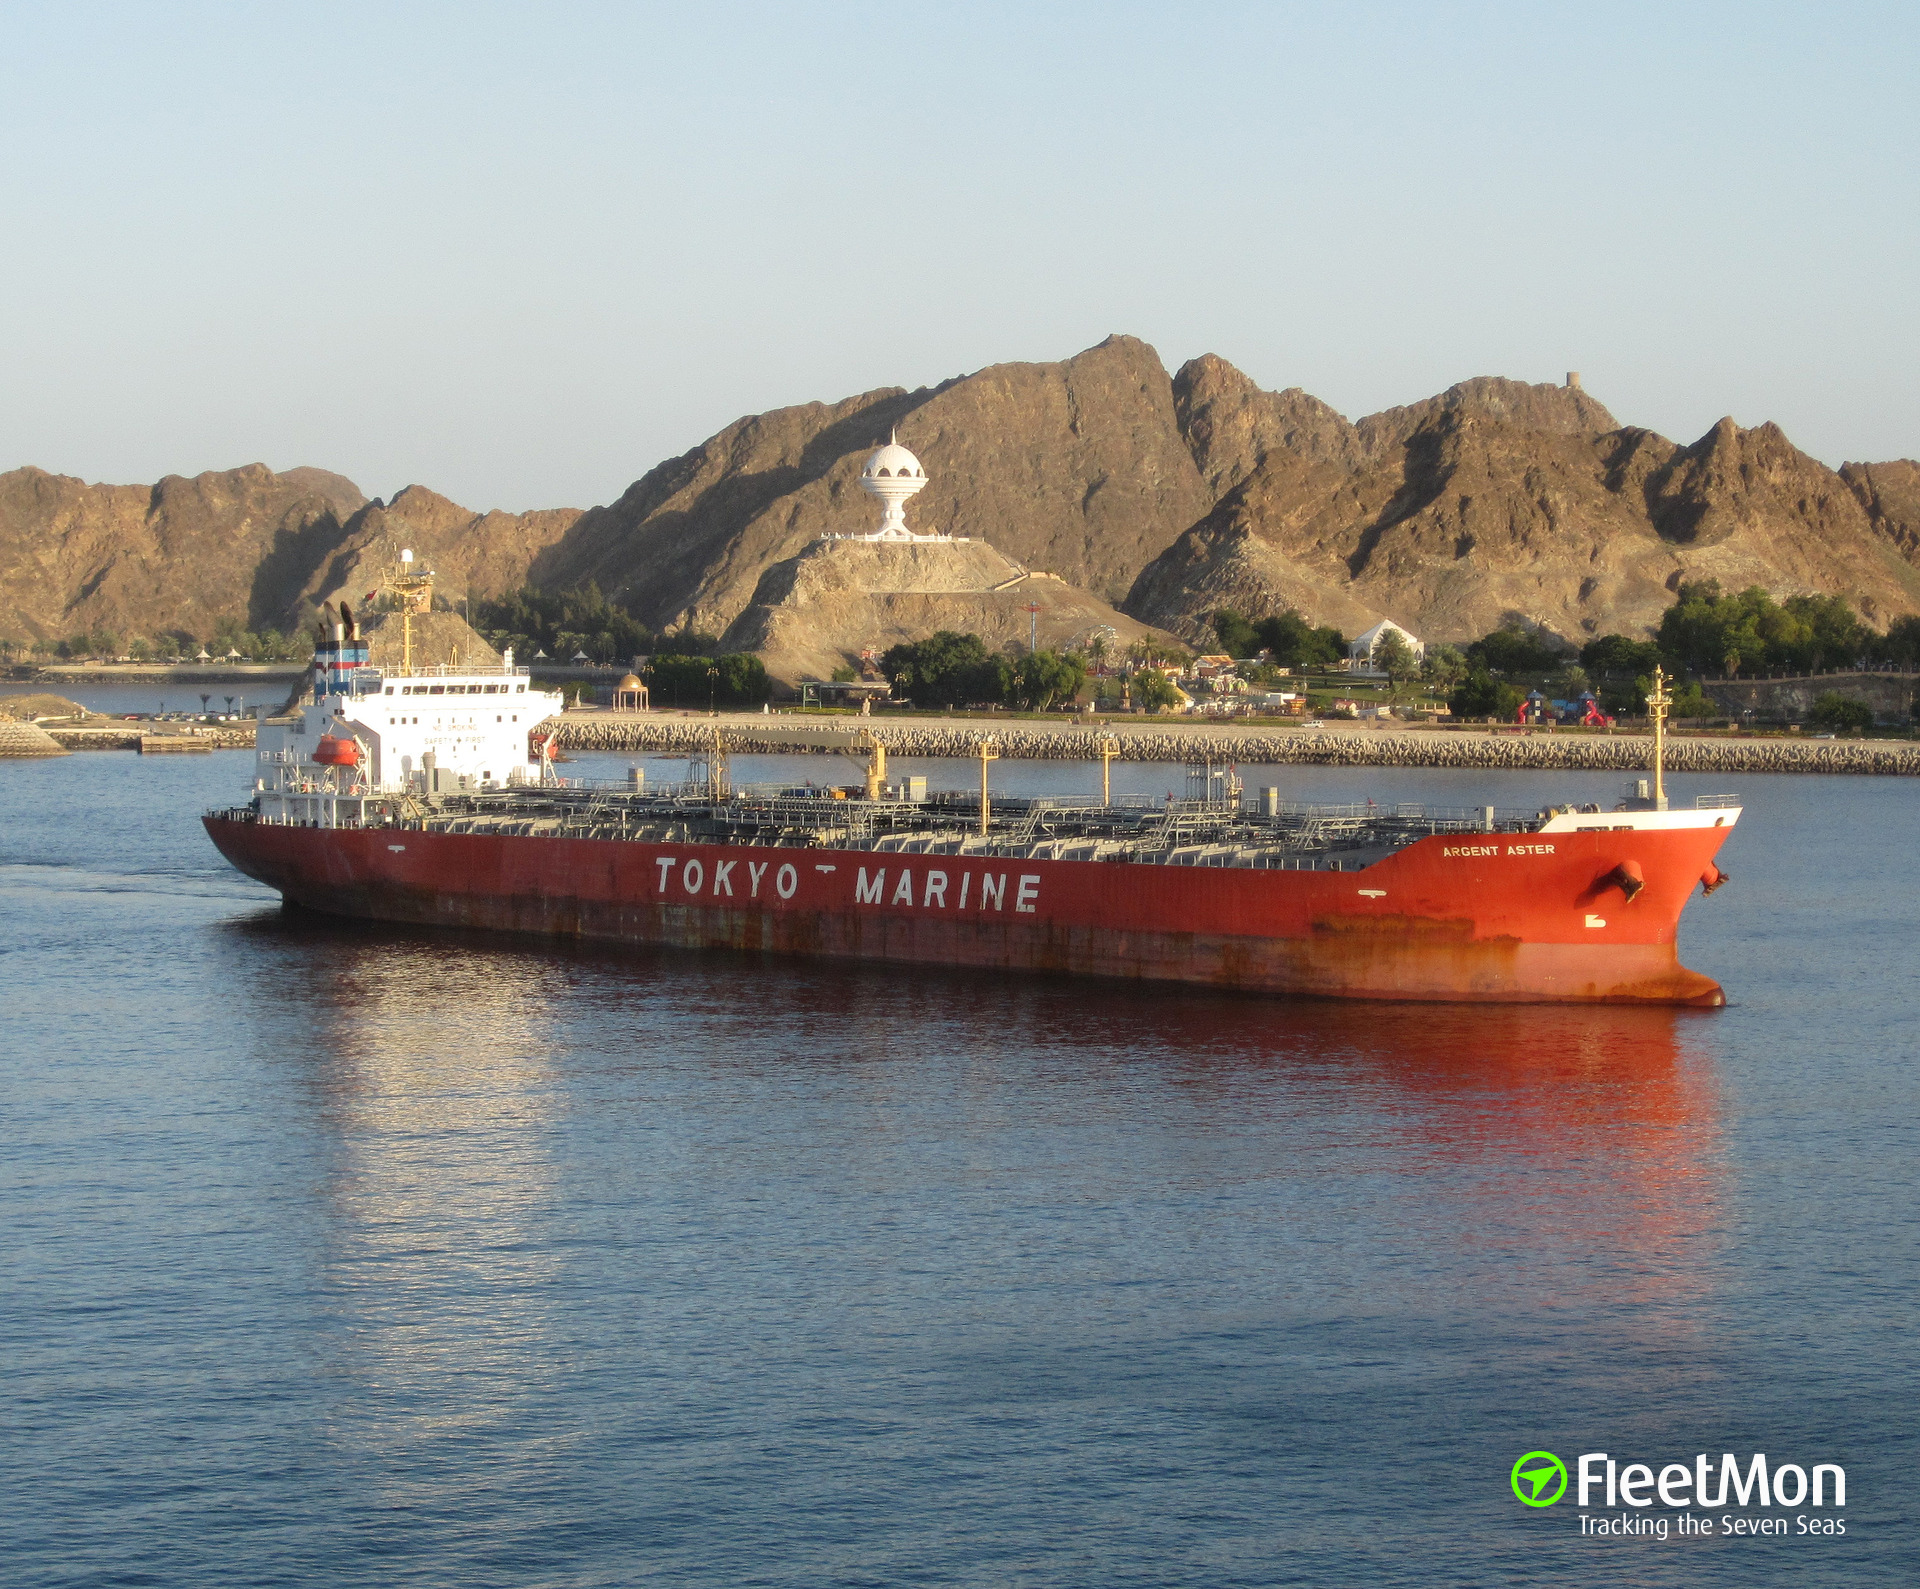 Photo Of ARGENT ASTER IMO 9379959 MMSI 372956000 Callsign